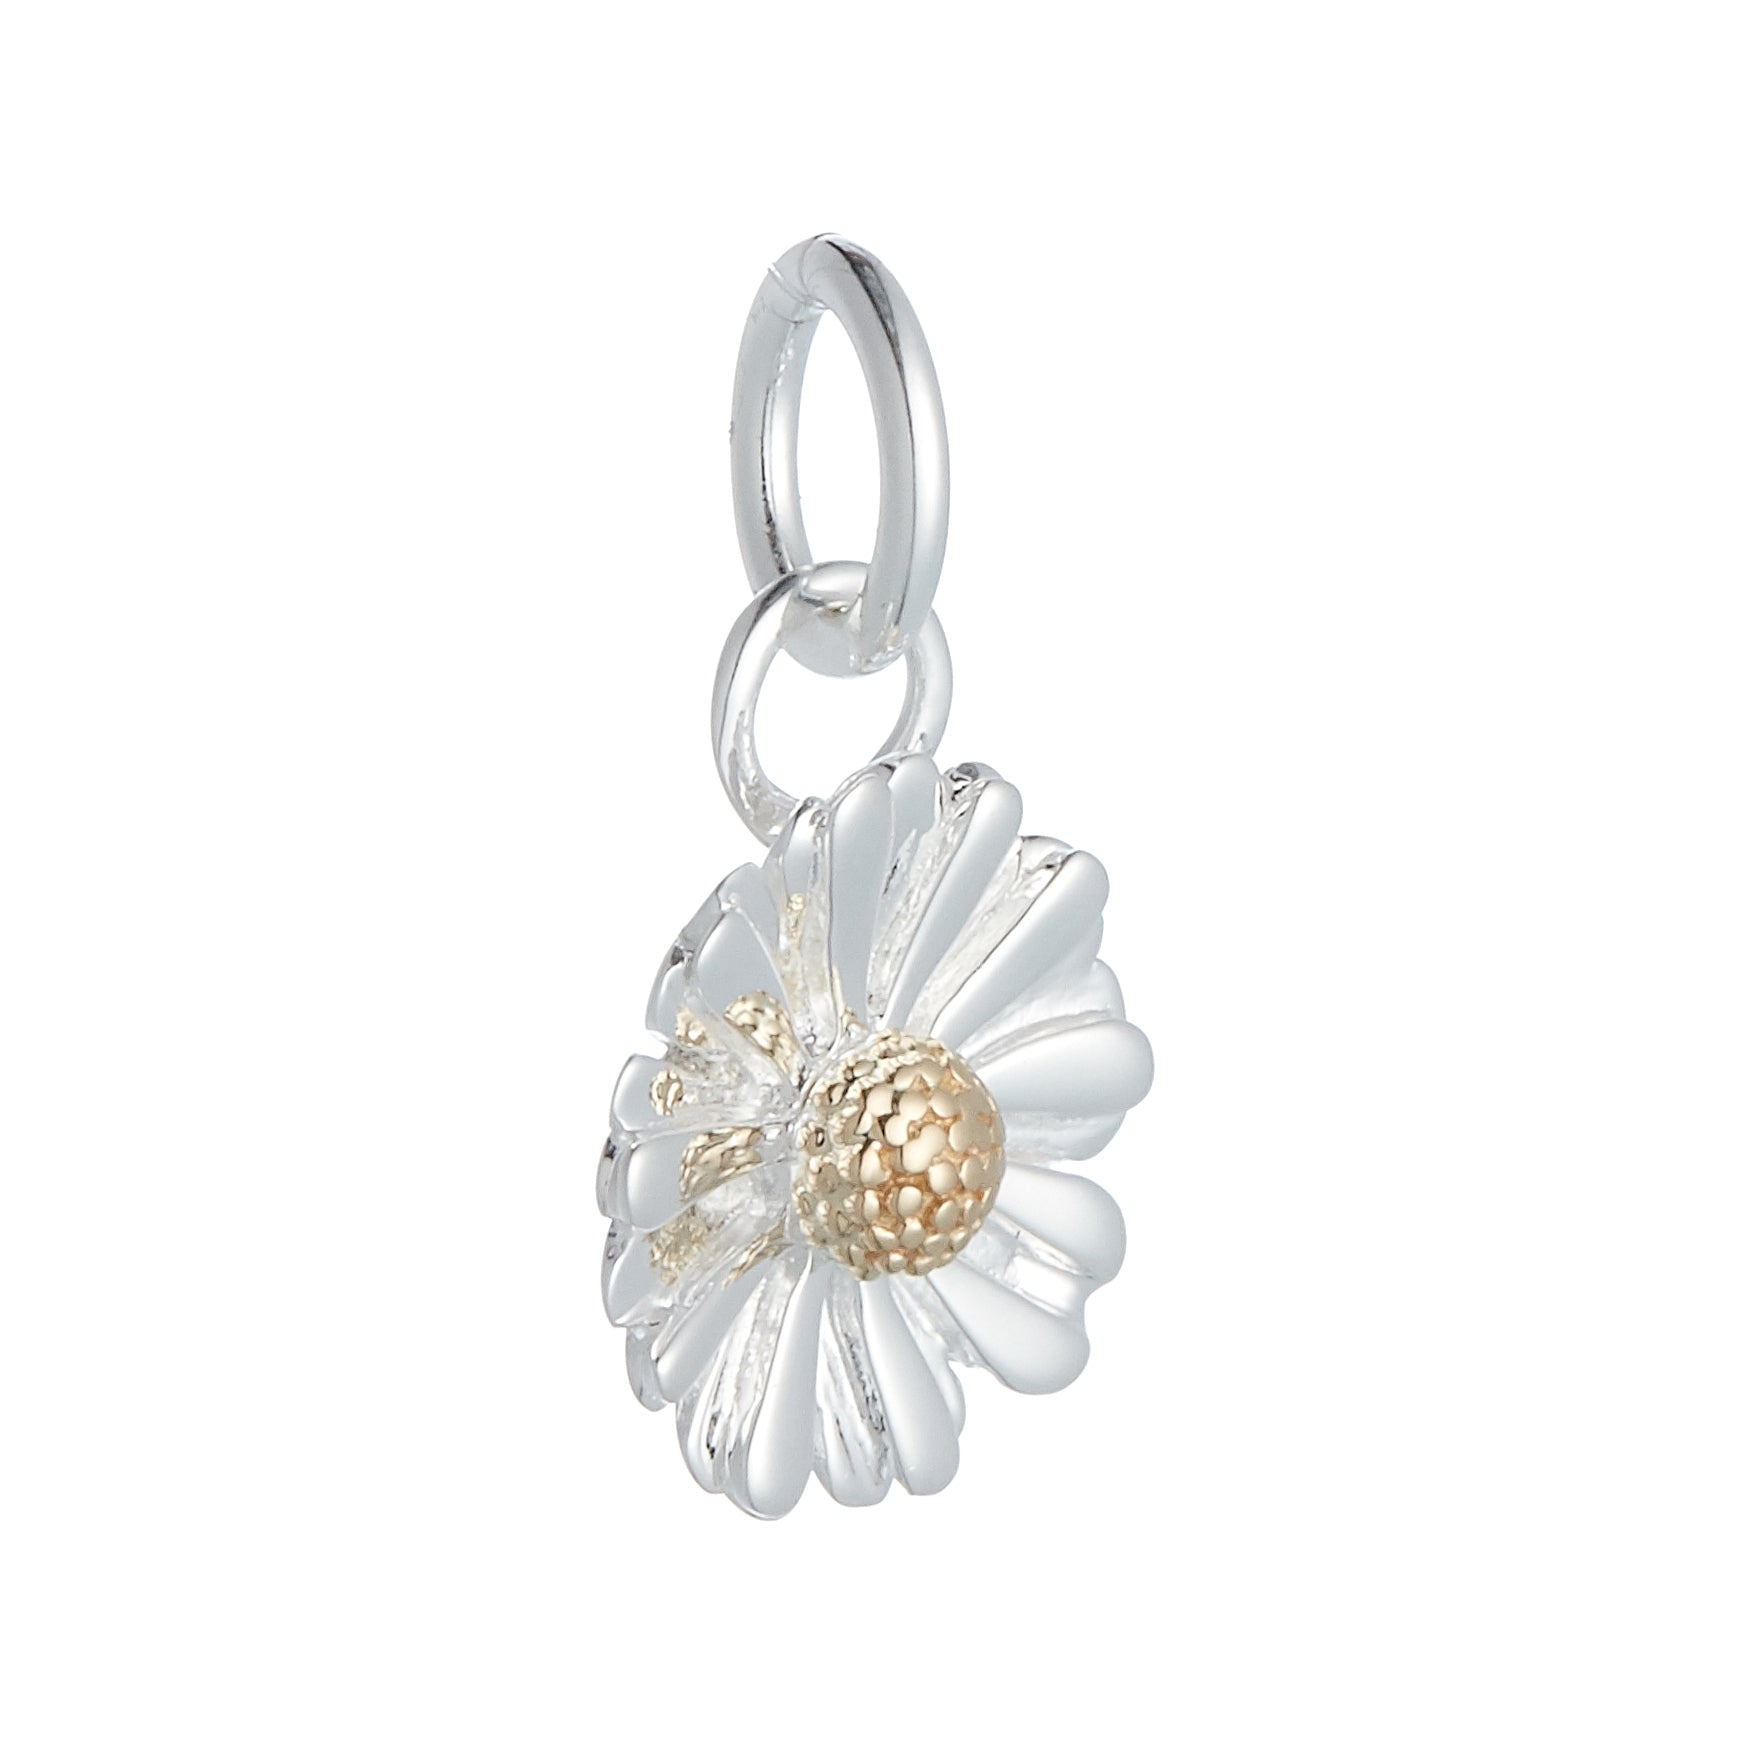 Daisy Flower Silver & Gold Charm